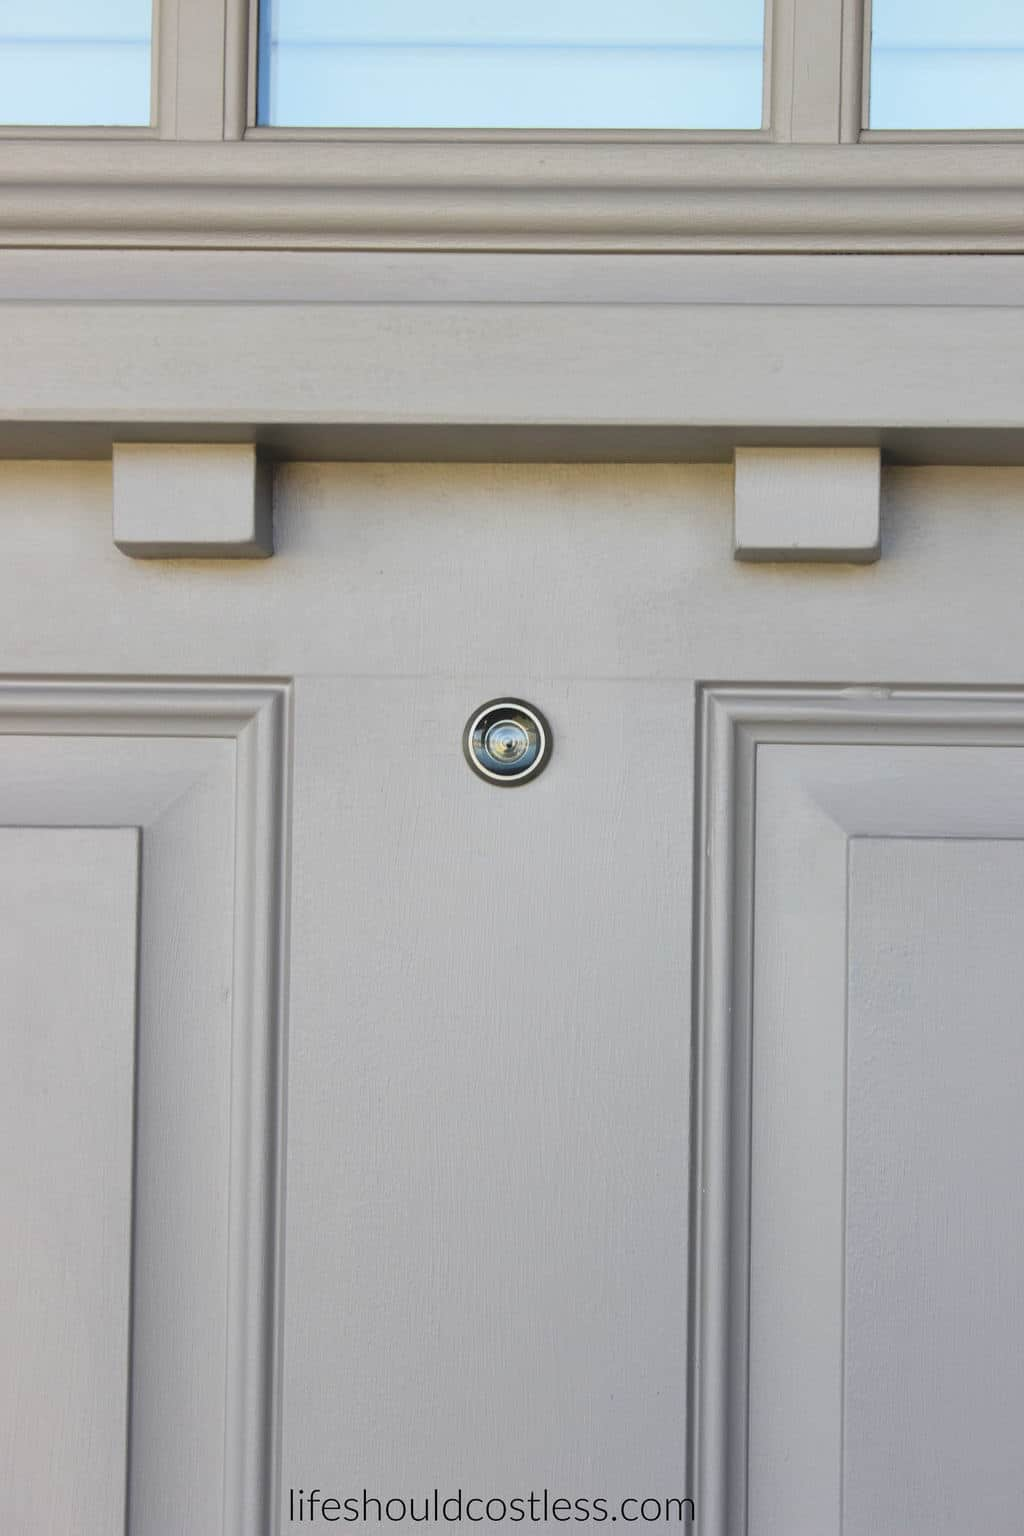 DIY How to install a peep hole in your front door. After